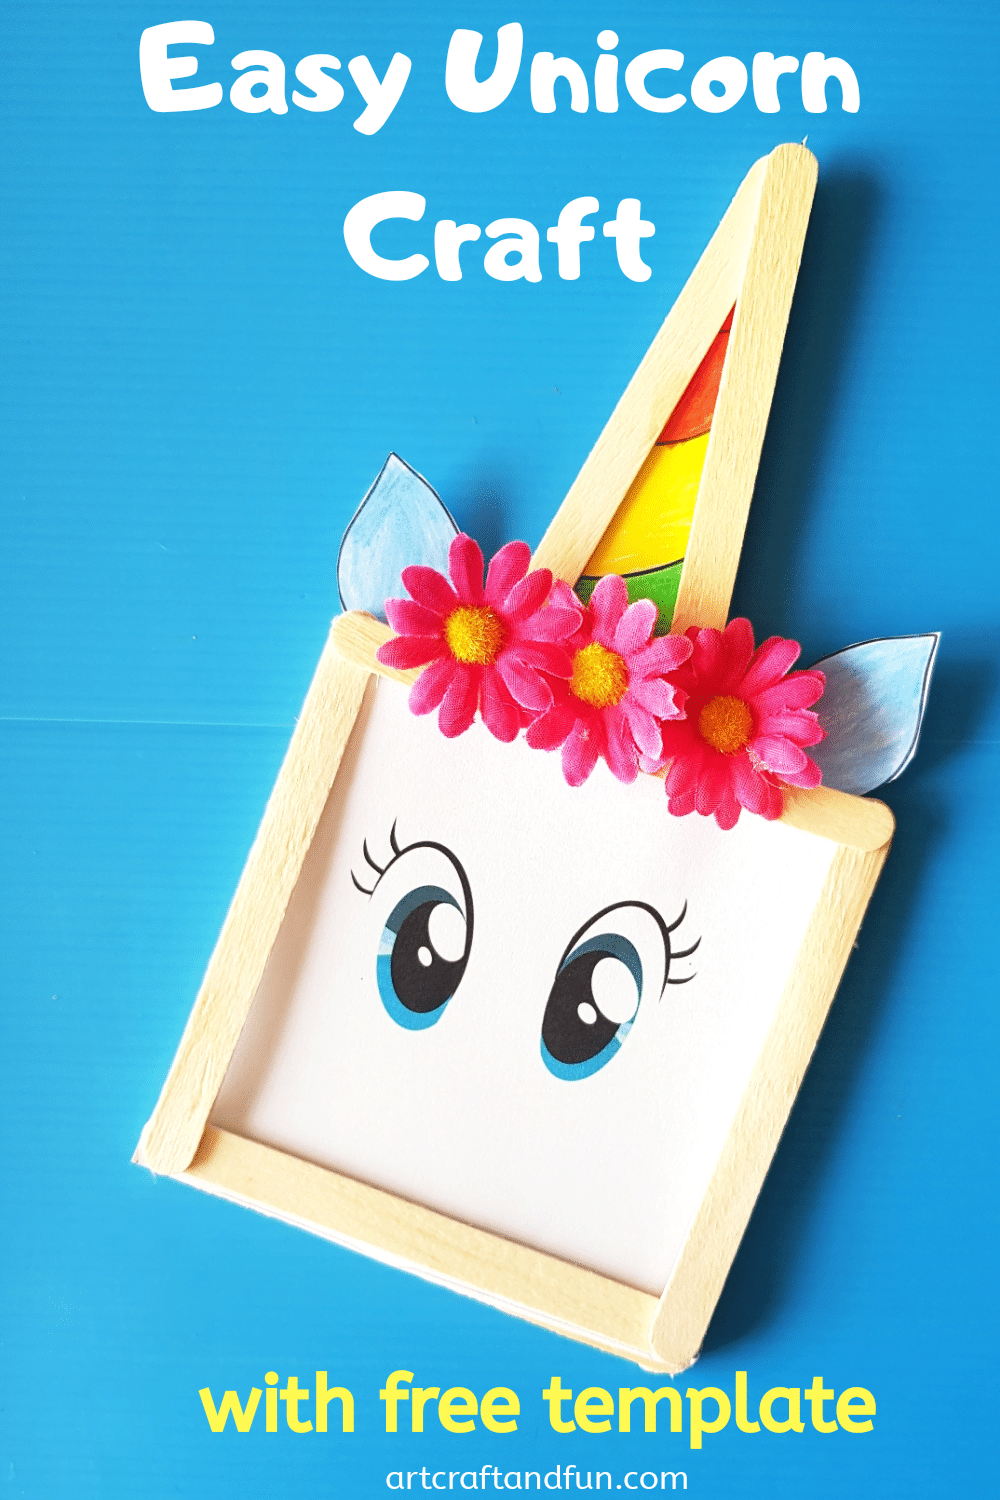 Easy Unicorn Craft Using Popsicle Sticks